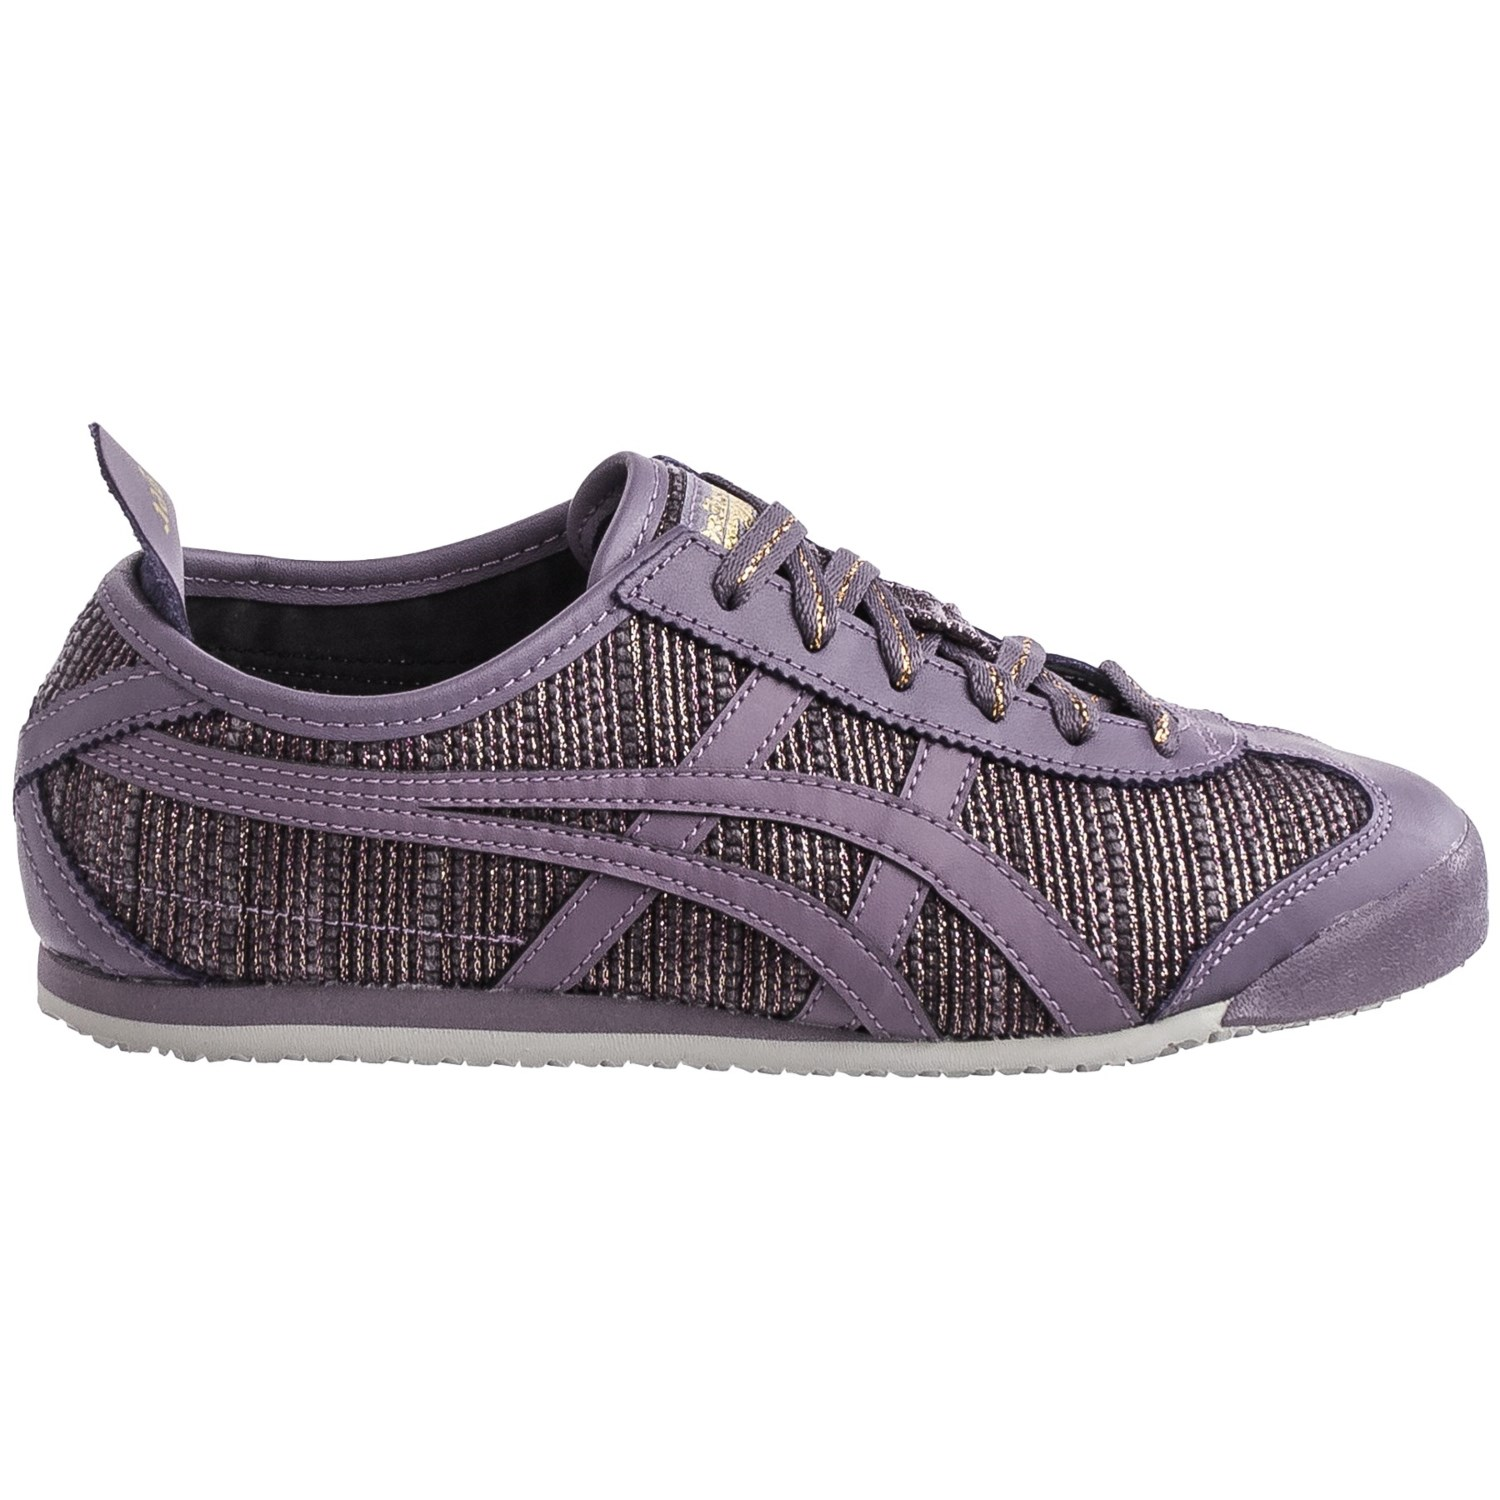 asics onitsuka tiger mexico 66 sneakers for women save 61. Black Bedroom Furniture Sets. Home Design Ideas